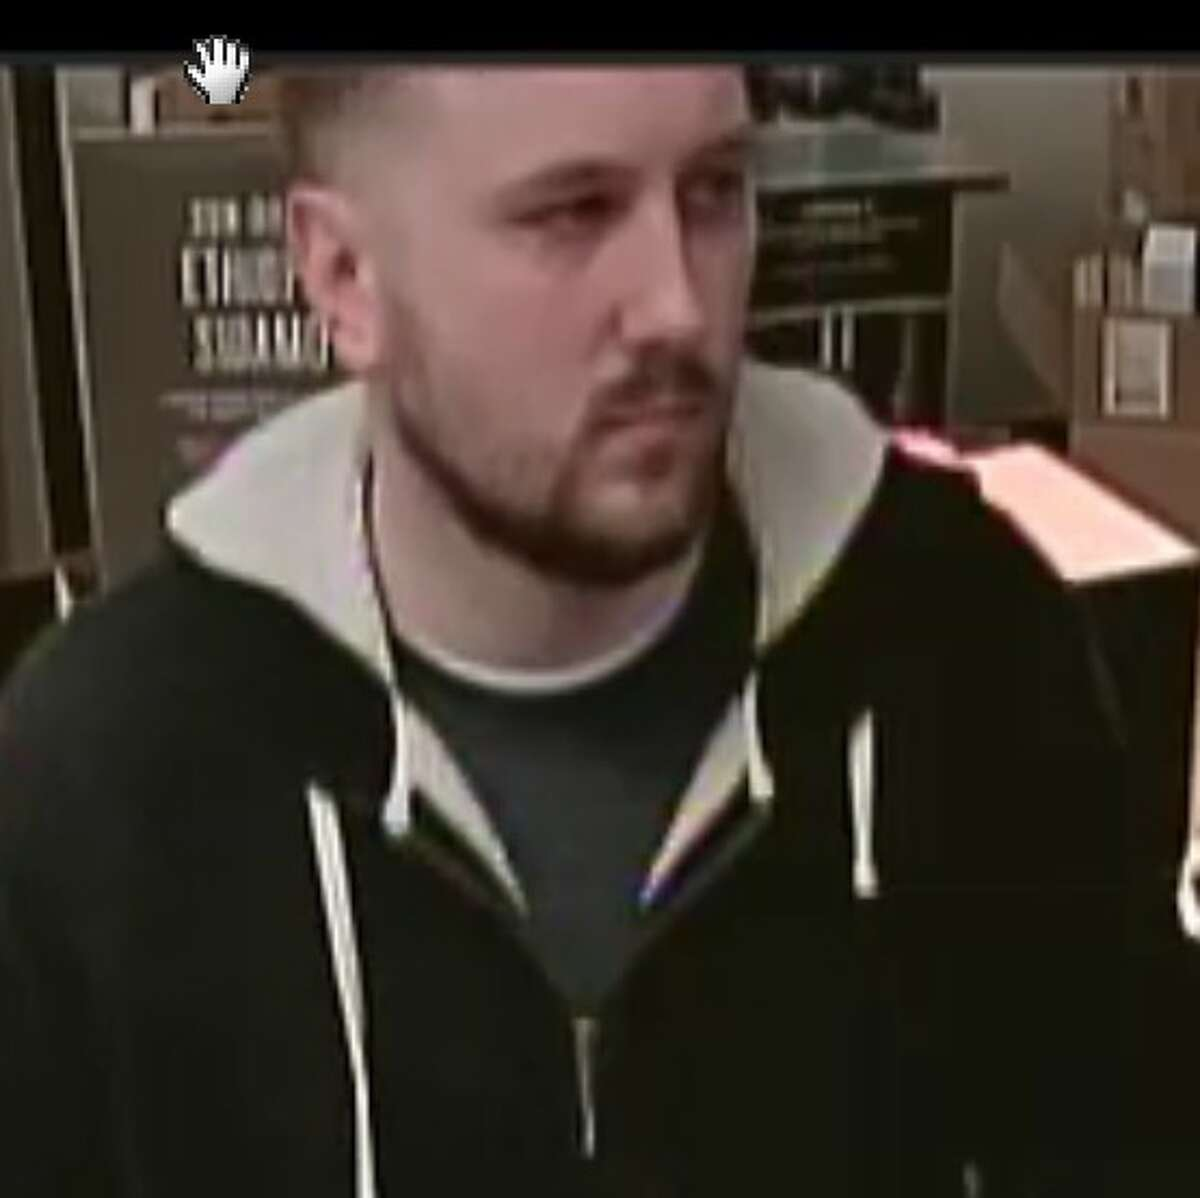 Colonie police used this surveillance photo to identify Jonathan H. Waters as a suspect after a Starbucks employee found a camera inside the cafe's bathroom in in May 2017.